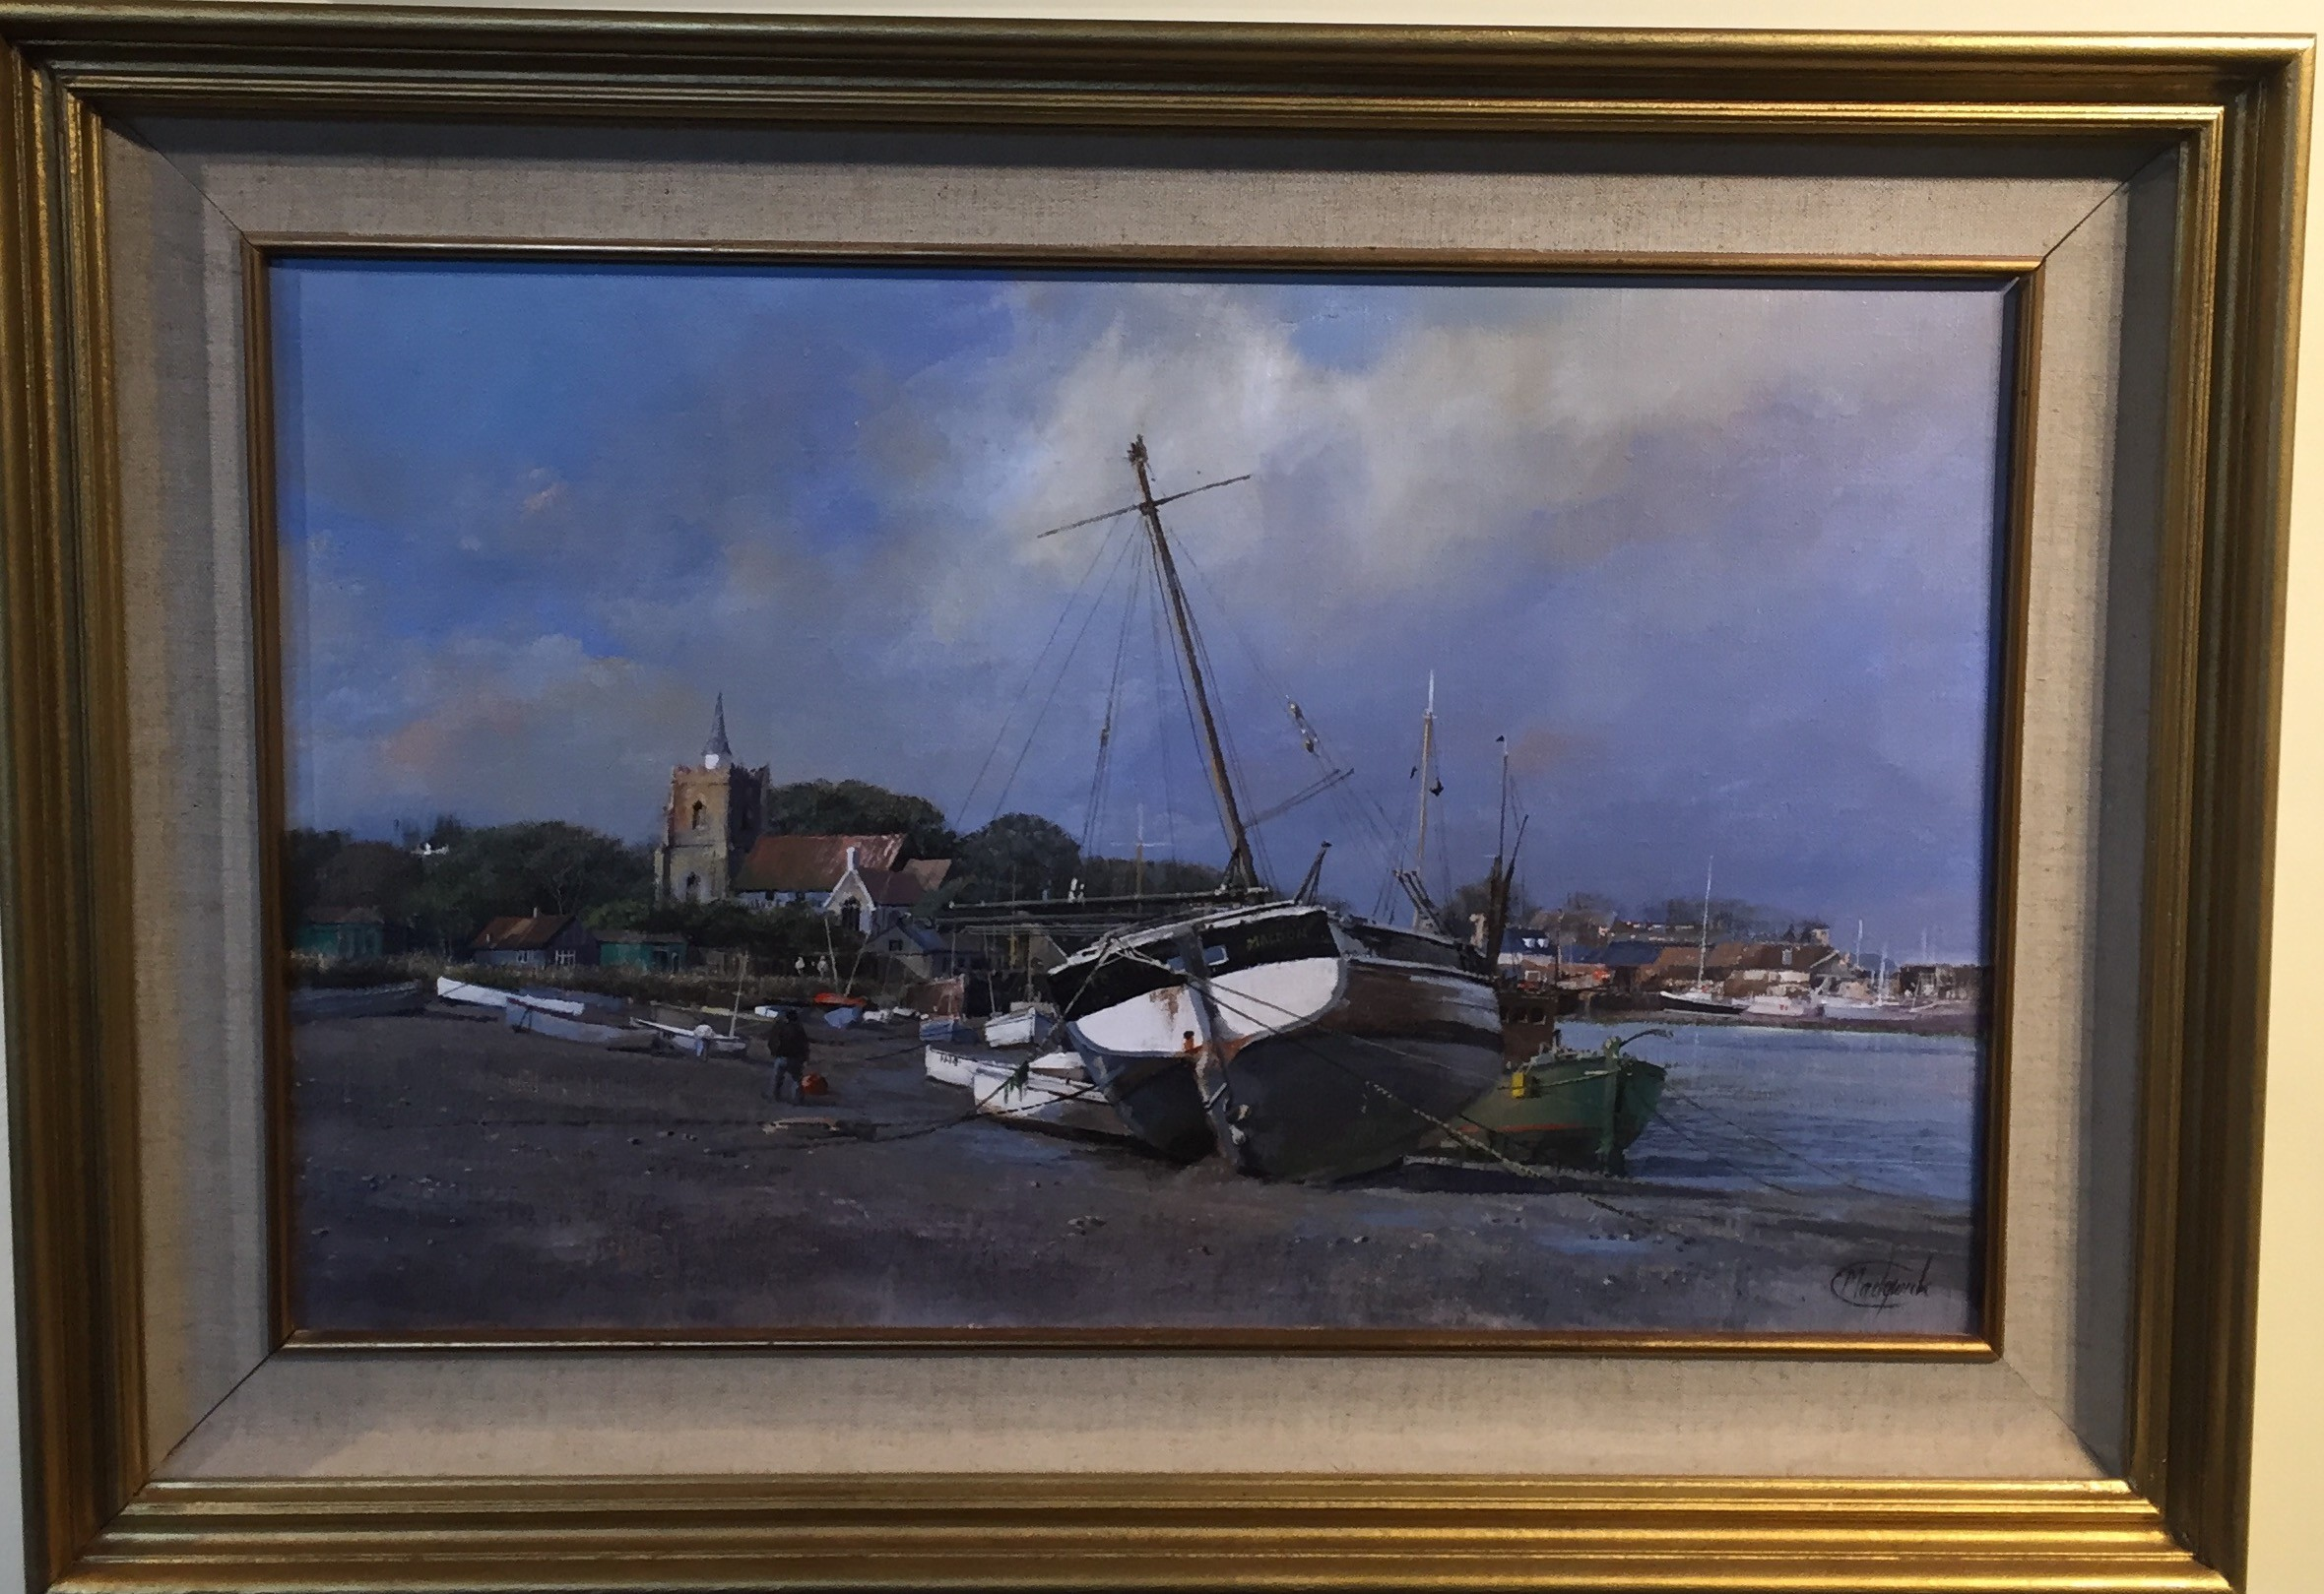 Low Tide, Maldon, Essex - SOLD